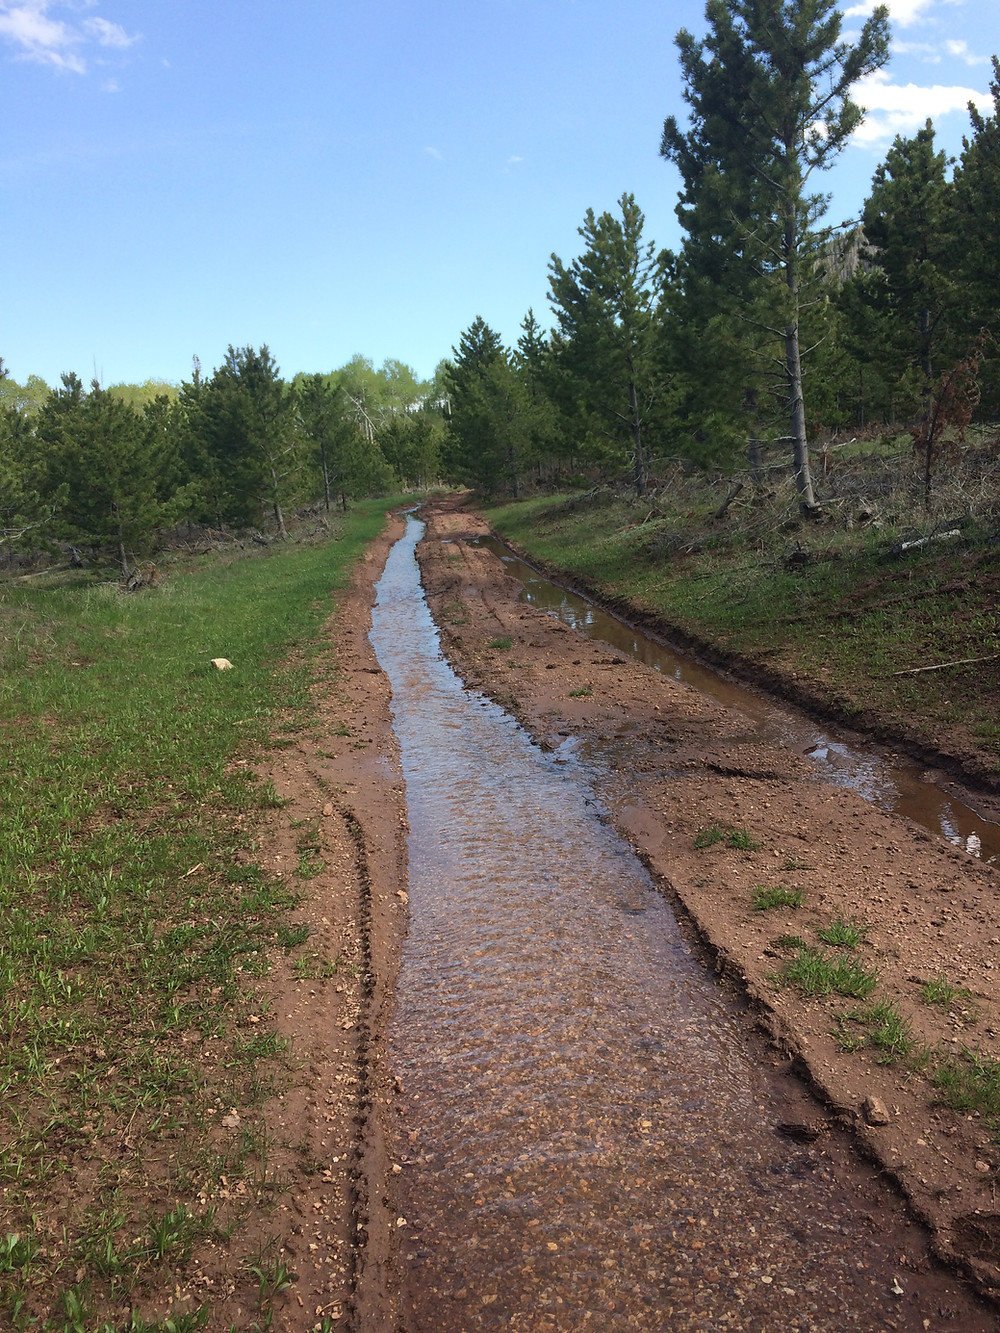 Forest Service Road in the Ashley National Forest, Utah